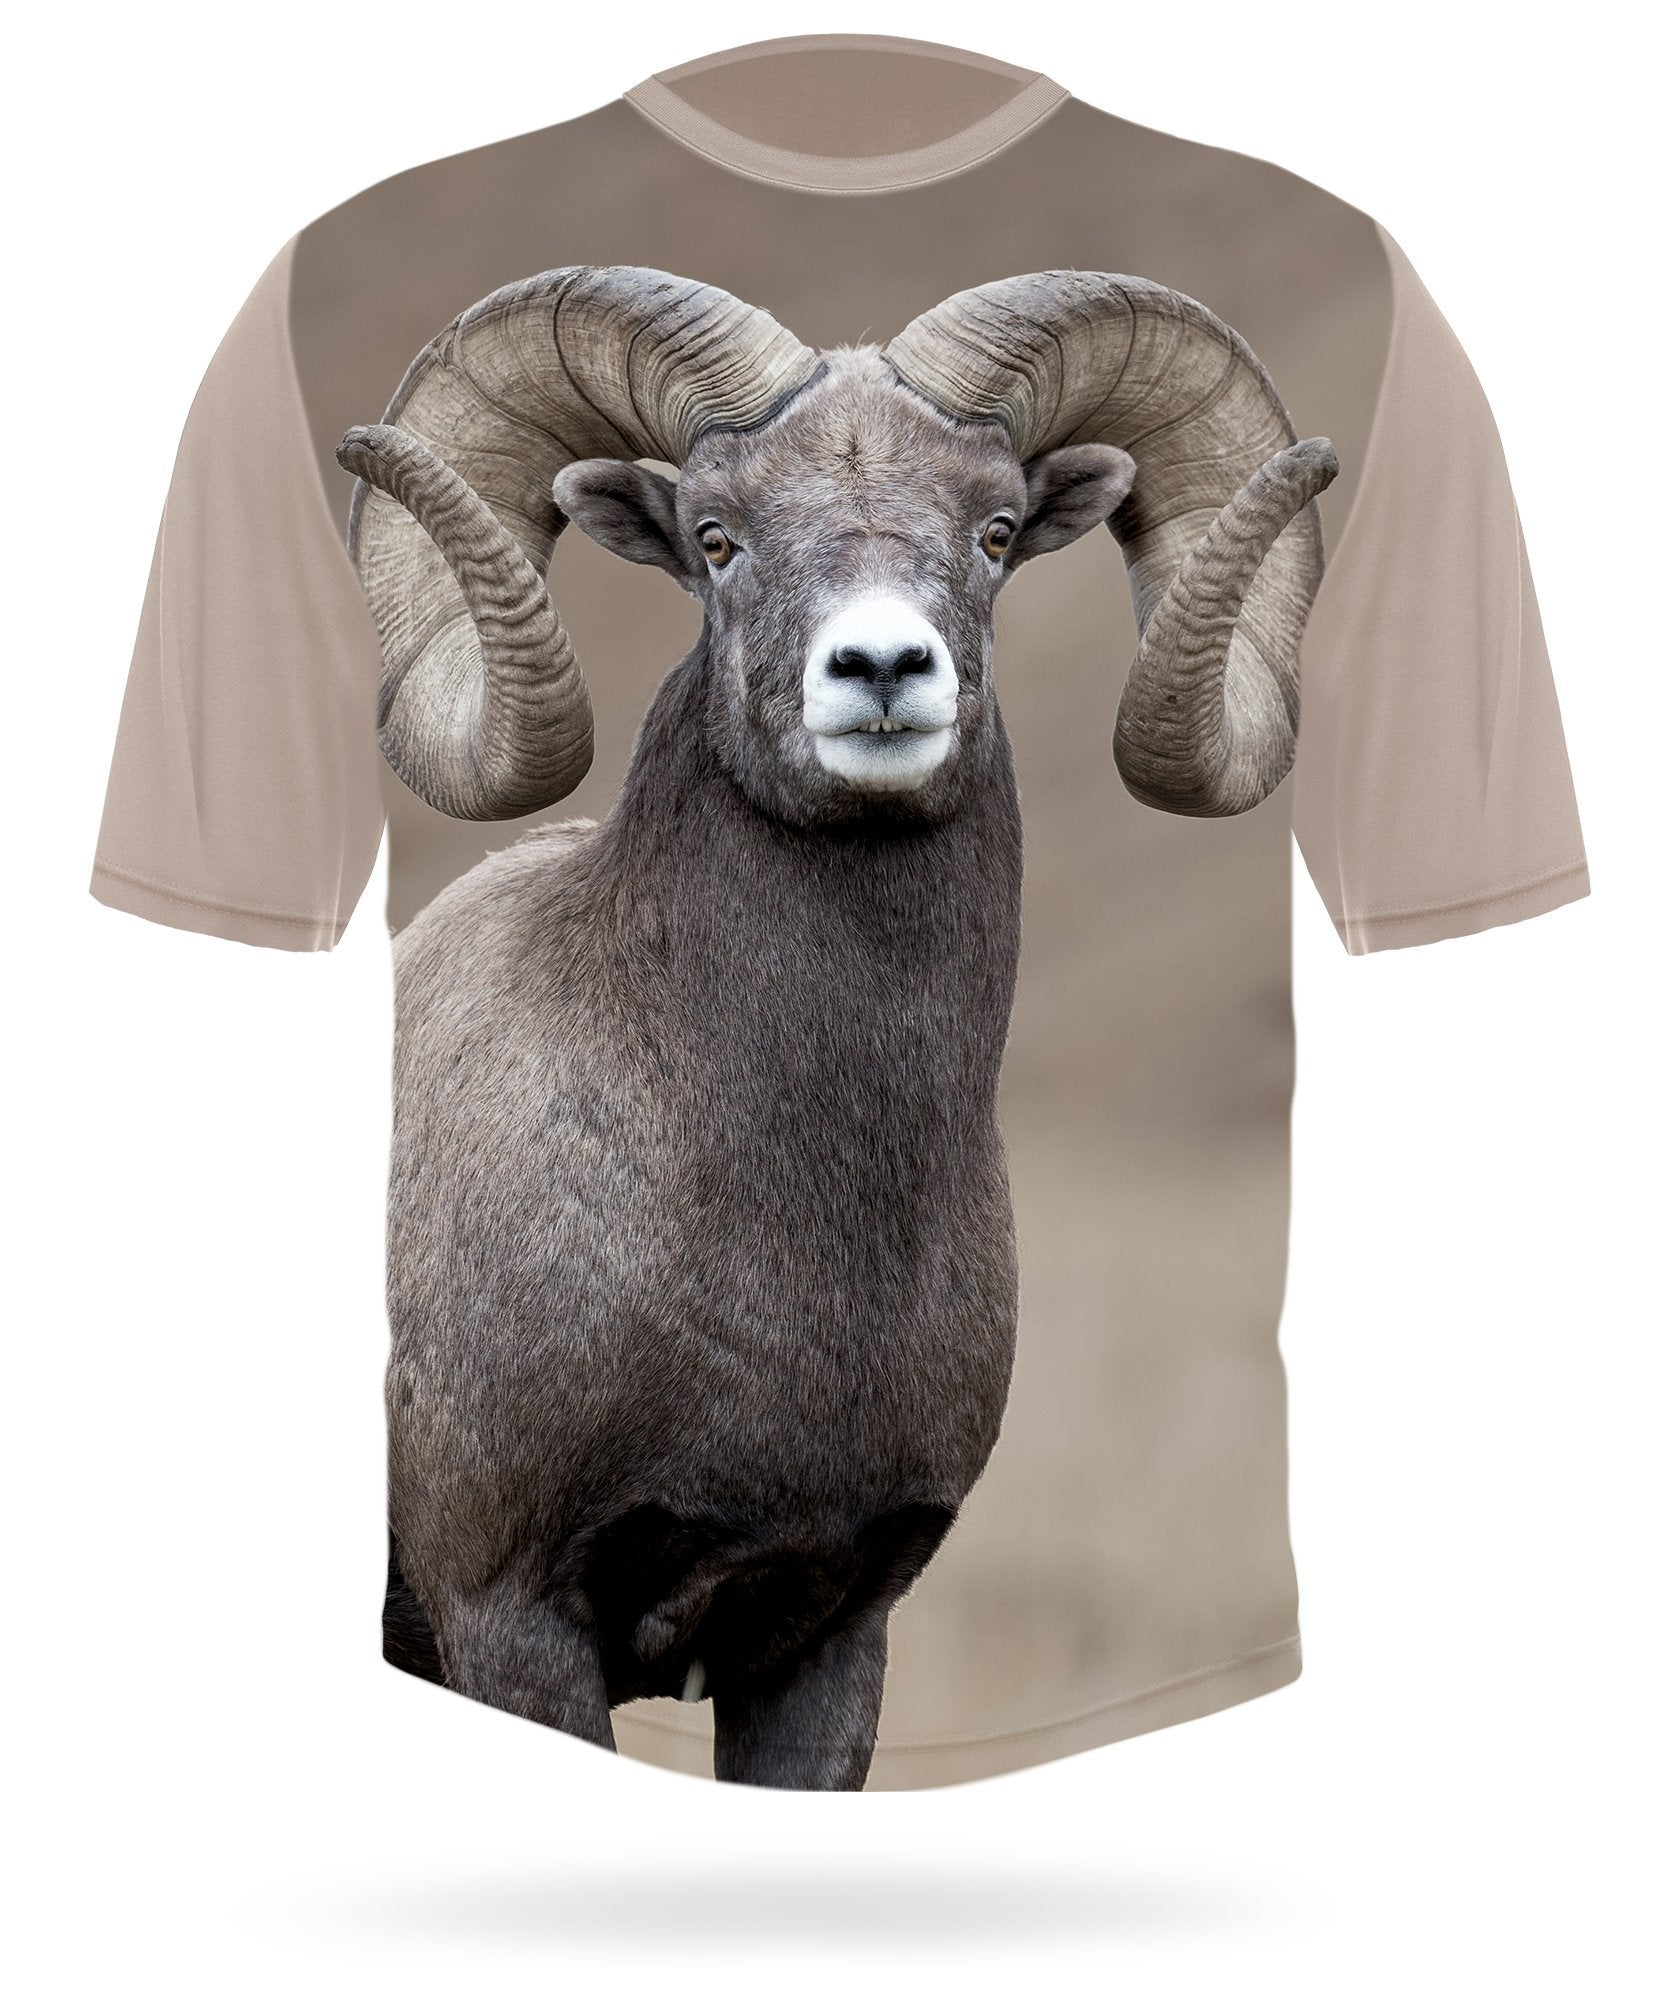 Bighorn Sheep T-Shirt - Short Sleeve